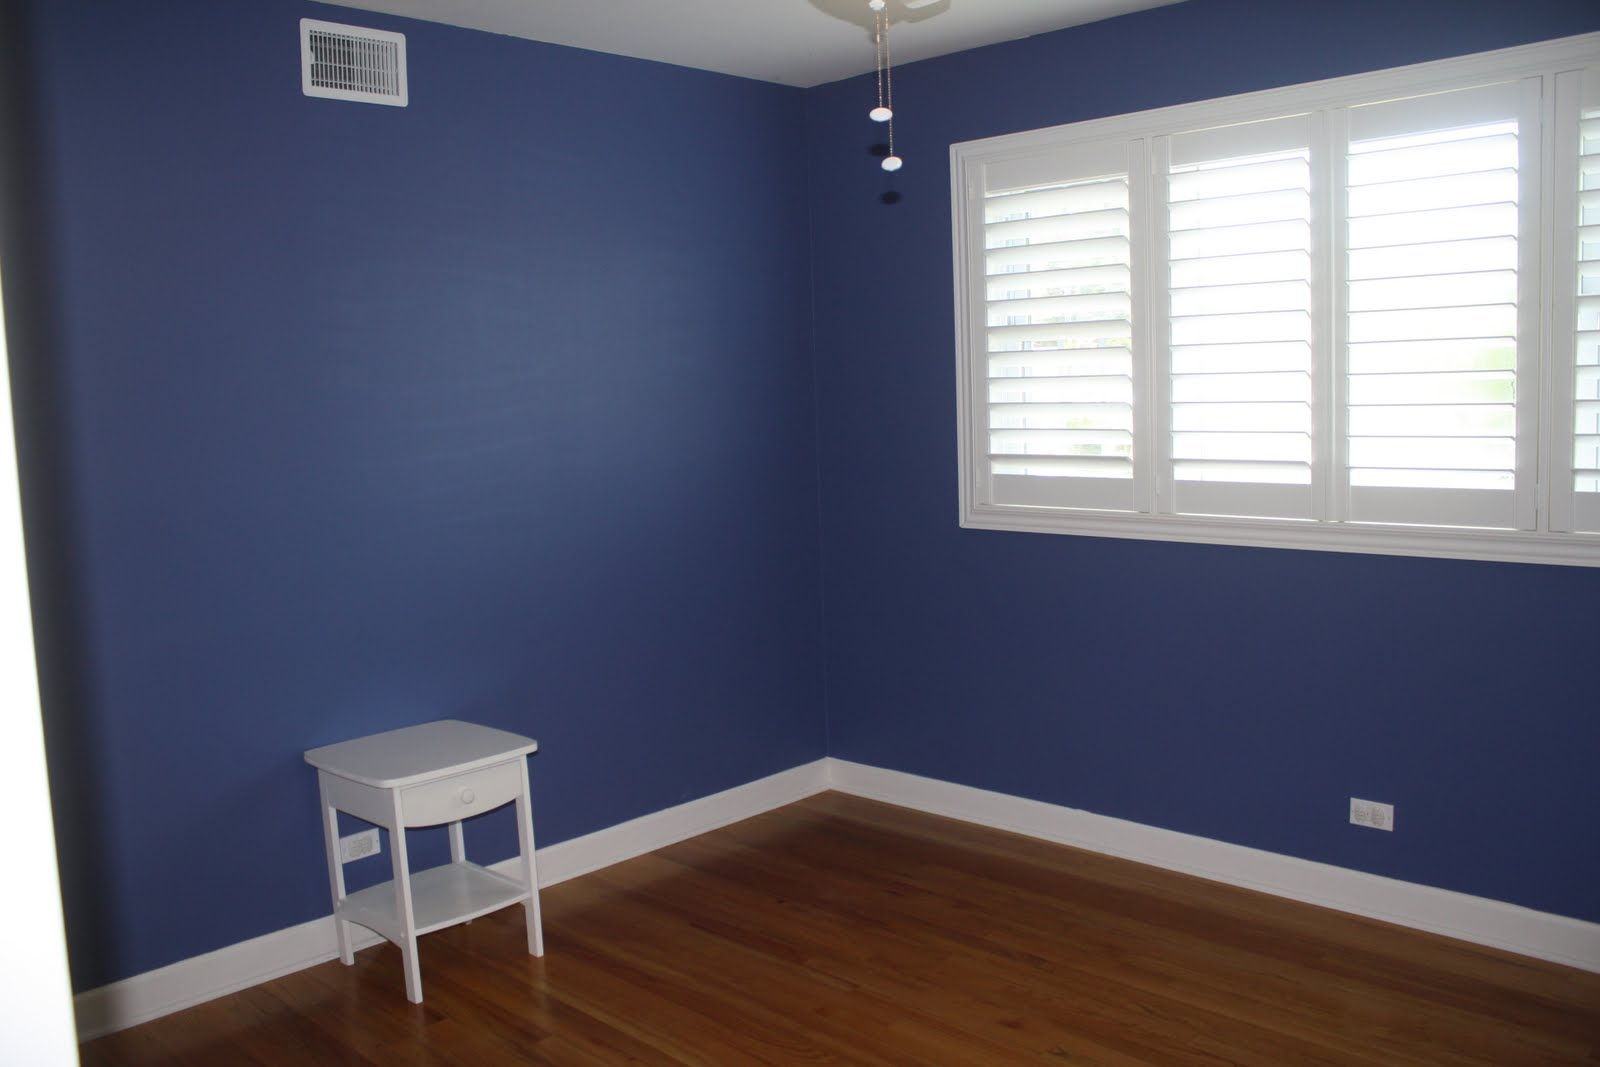 Paint Color Ideas For Bedroom Walls Avery And Kellan S Adventures Nursery Painting Is Complete